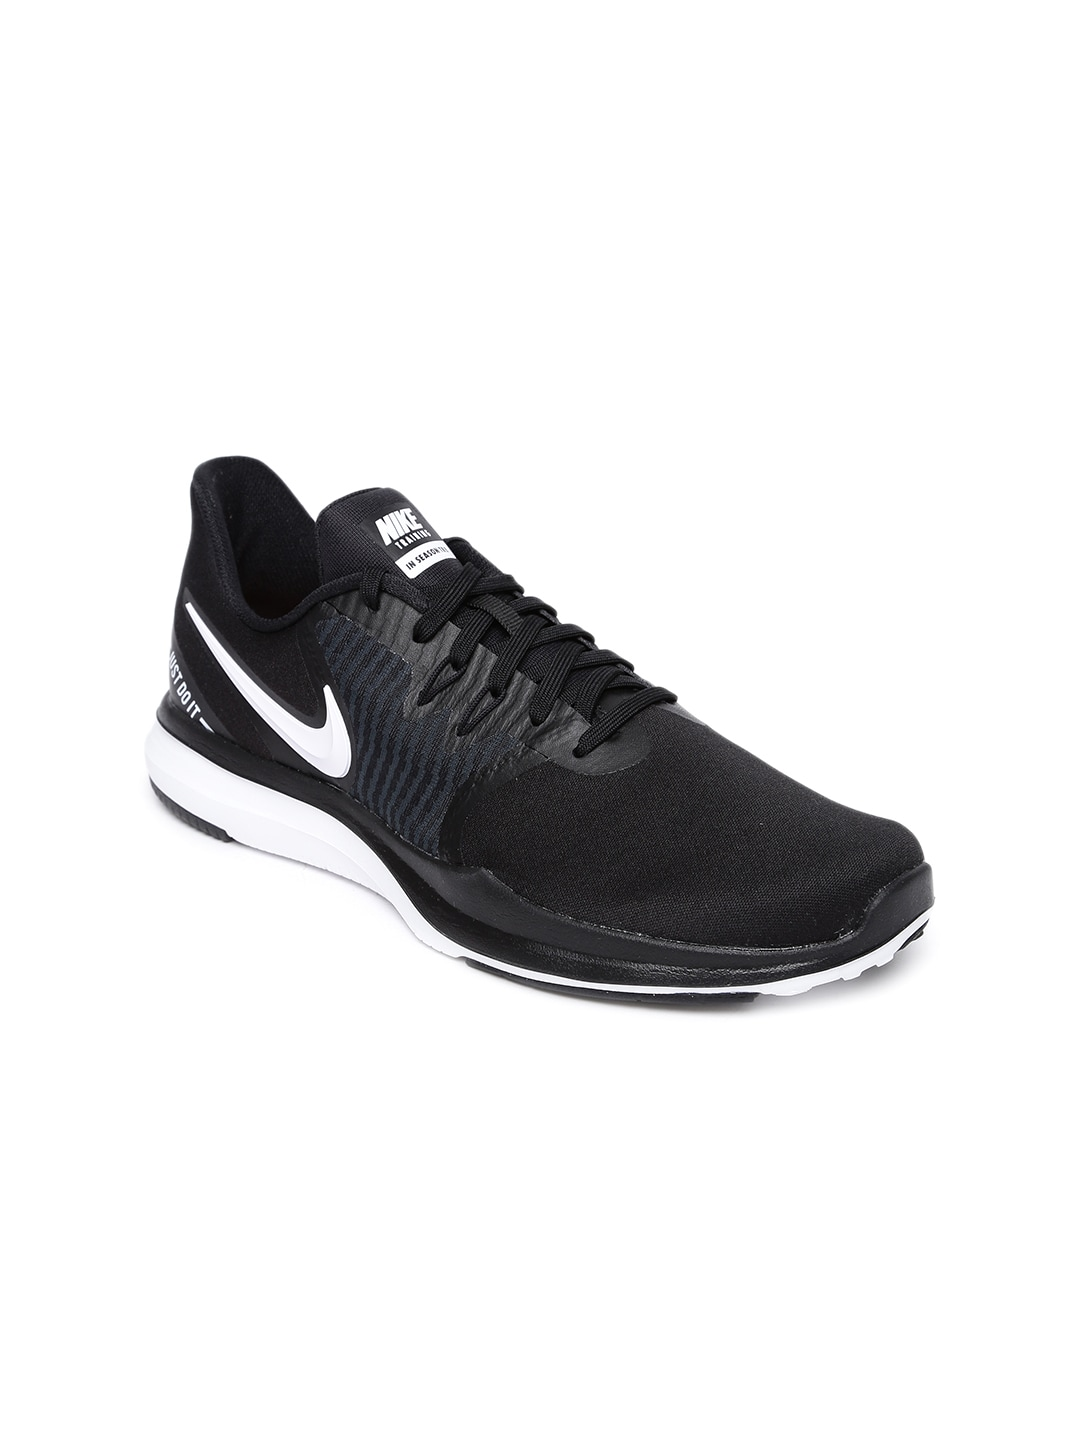 9302a20871d2 Nike Training Shoes Women - Buy Nike Training Shoes Women online in India